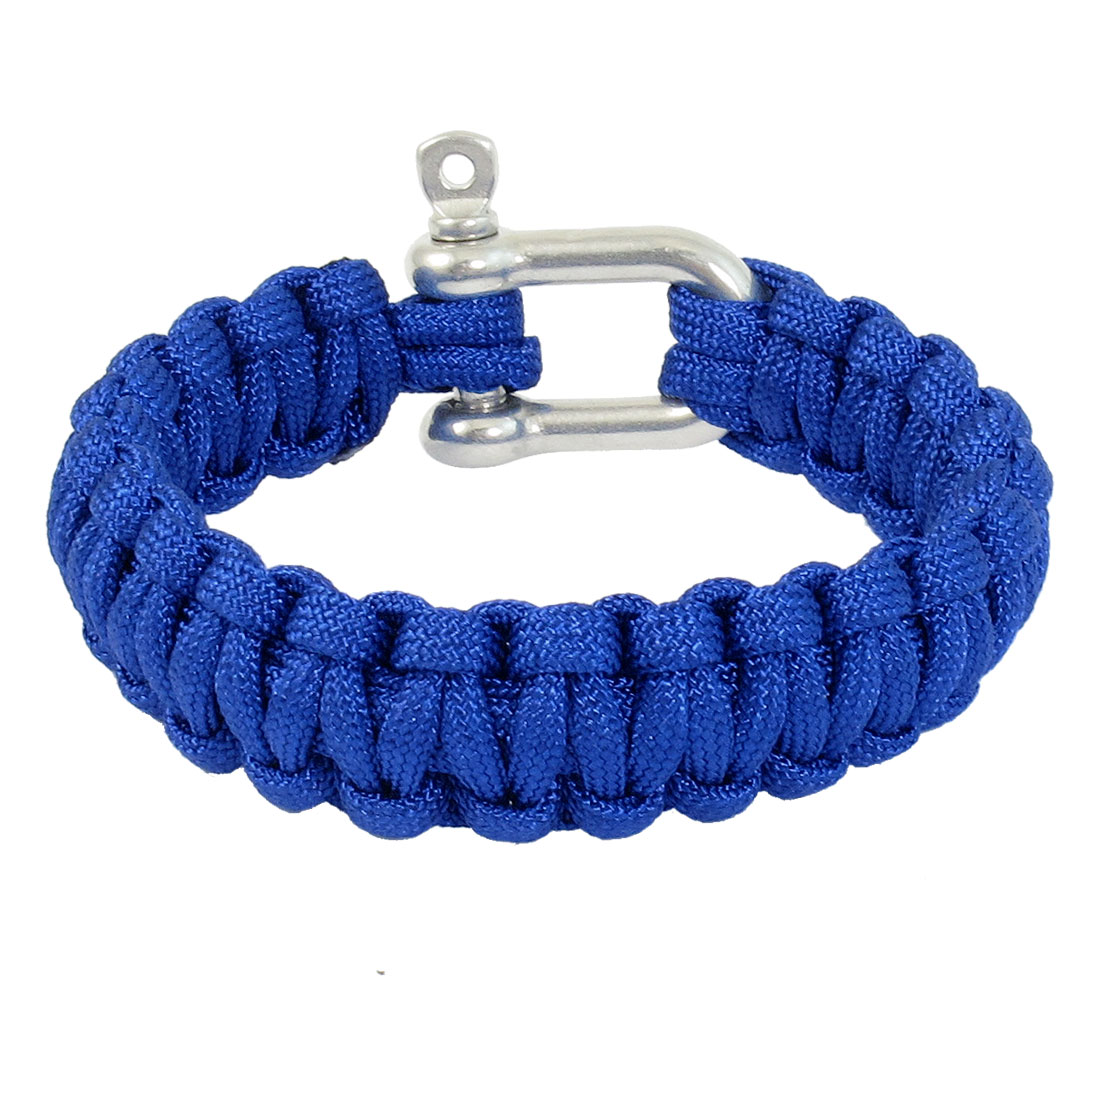 Outdoor Activities Practical Stainless Steel Shackle Blue Survival Bracelet